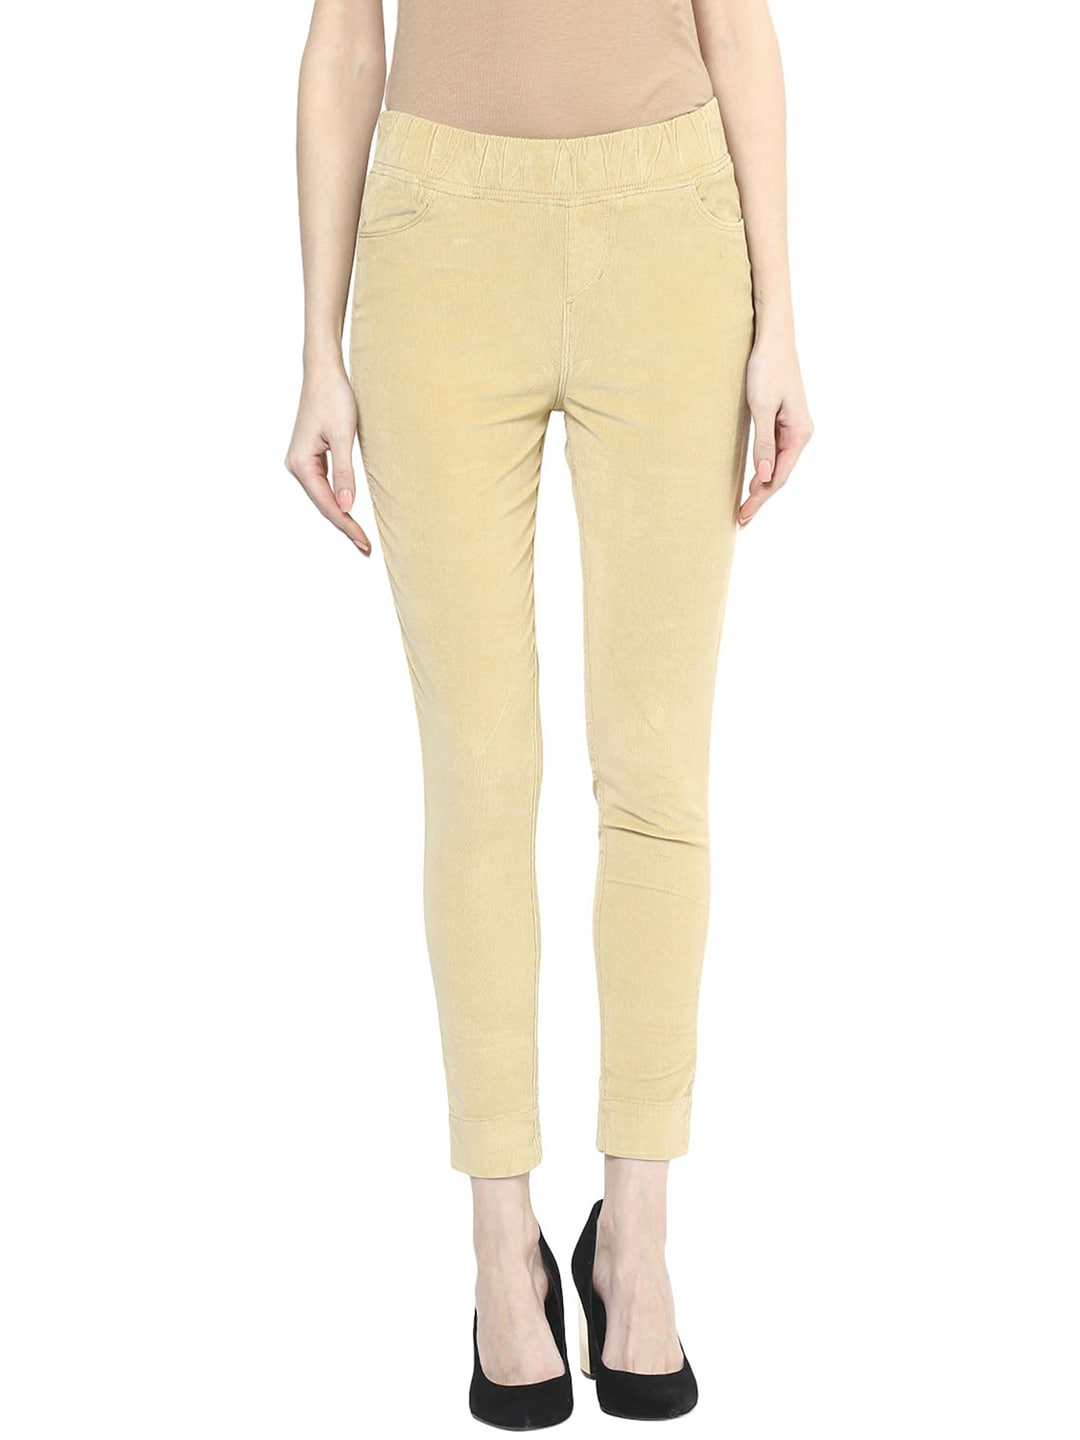 Xpose Beige Relaxed Fit Corduroy Jeggings image